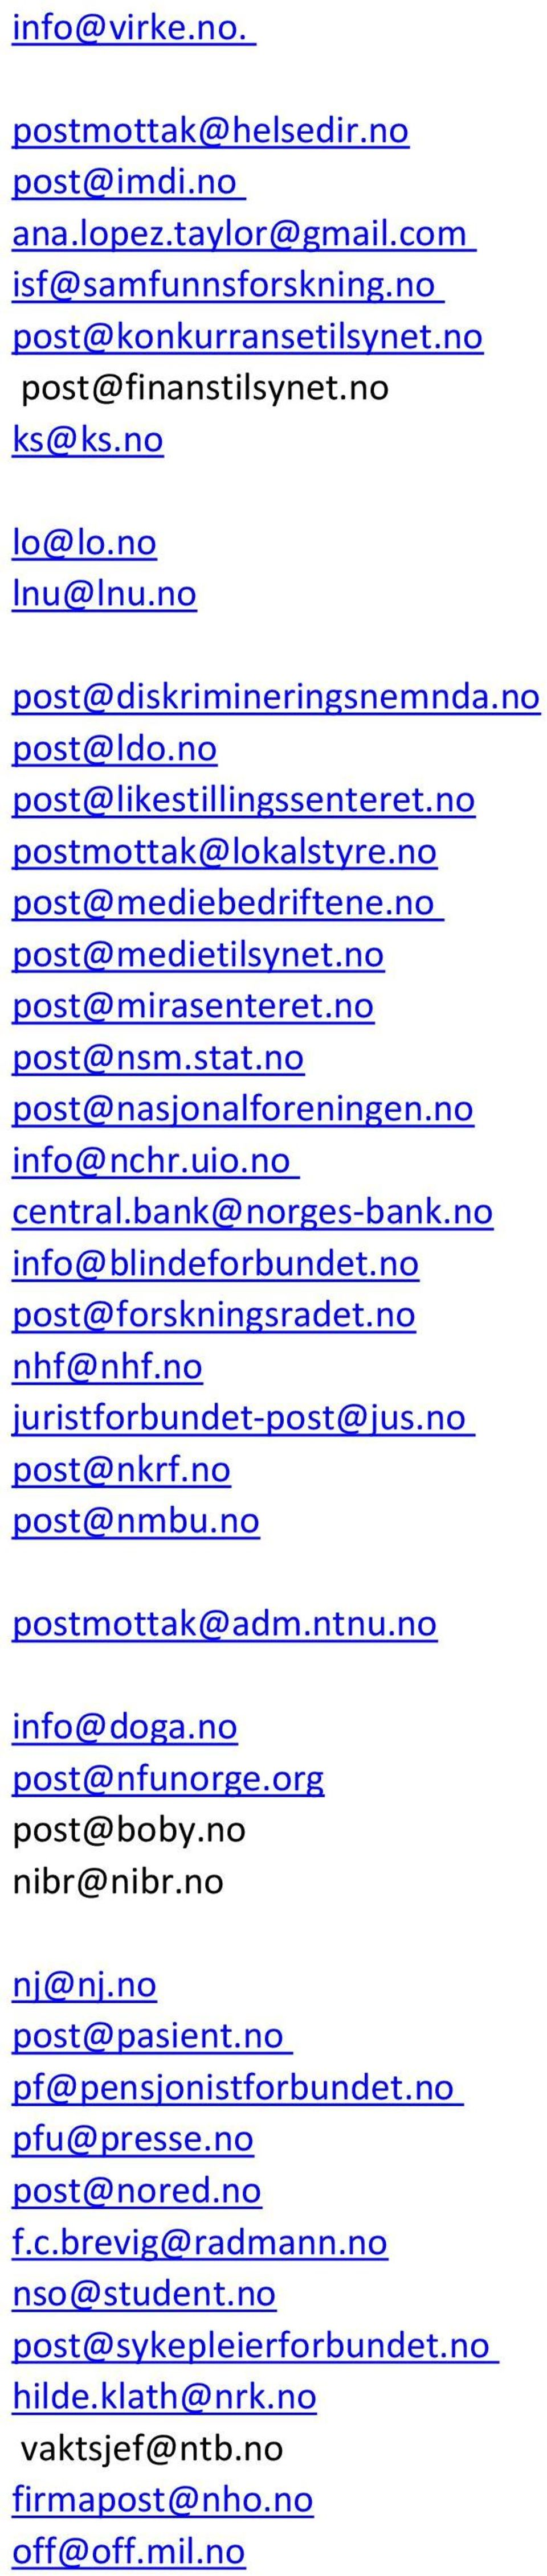 no post@nasjonalforeningen.no info@nchr.uio.no central.bank@norges-bank.no info@blindeforbundet.no post@forskningsradet.no nhf@nhf.no juristforbundet-post@jus.no post@nkrf.no post@nmbu.